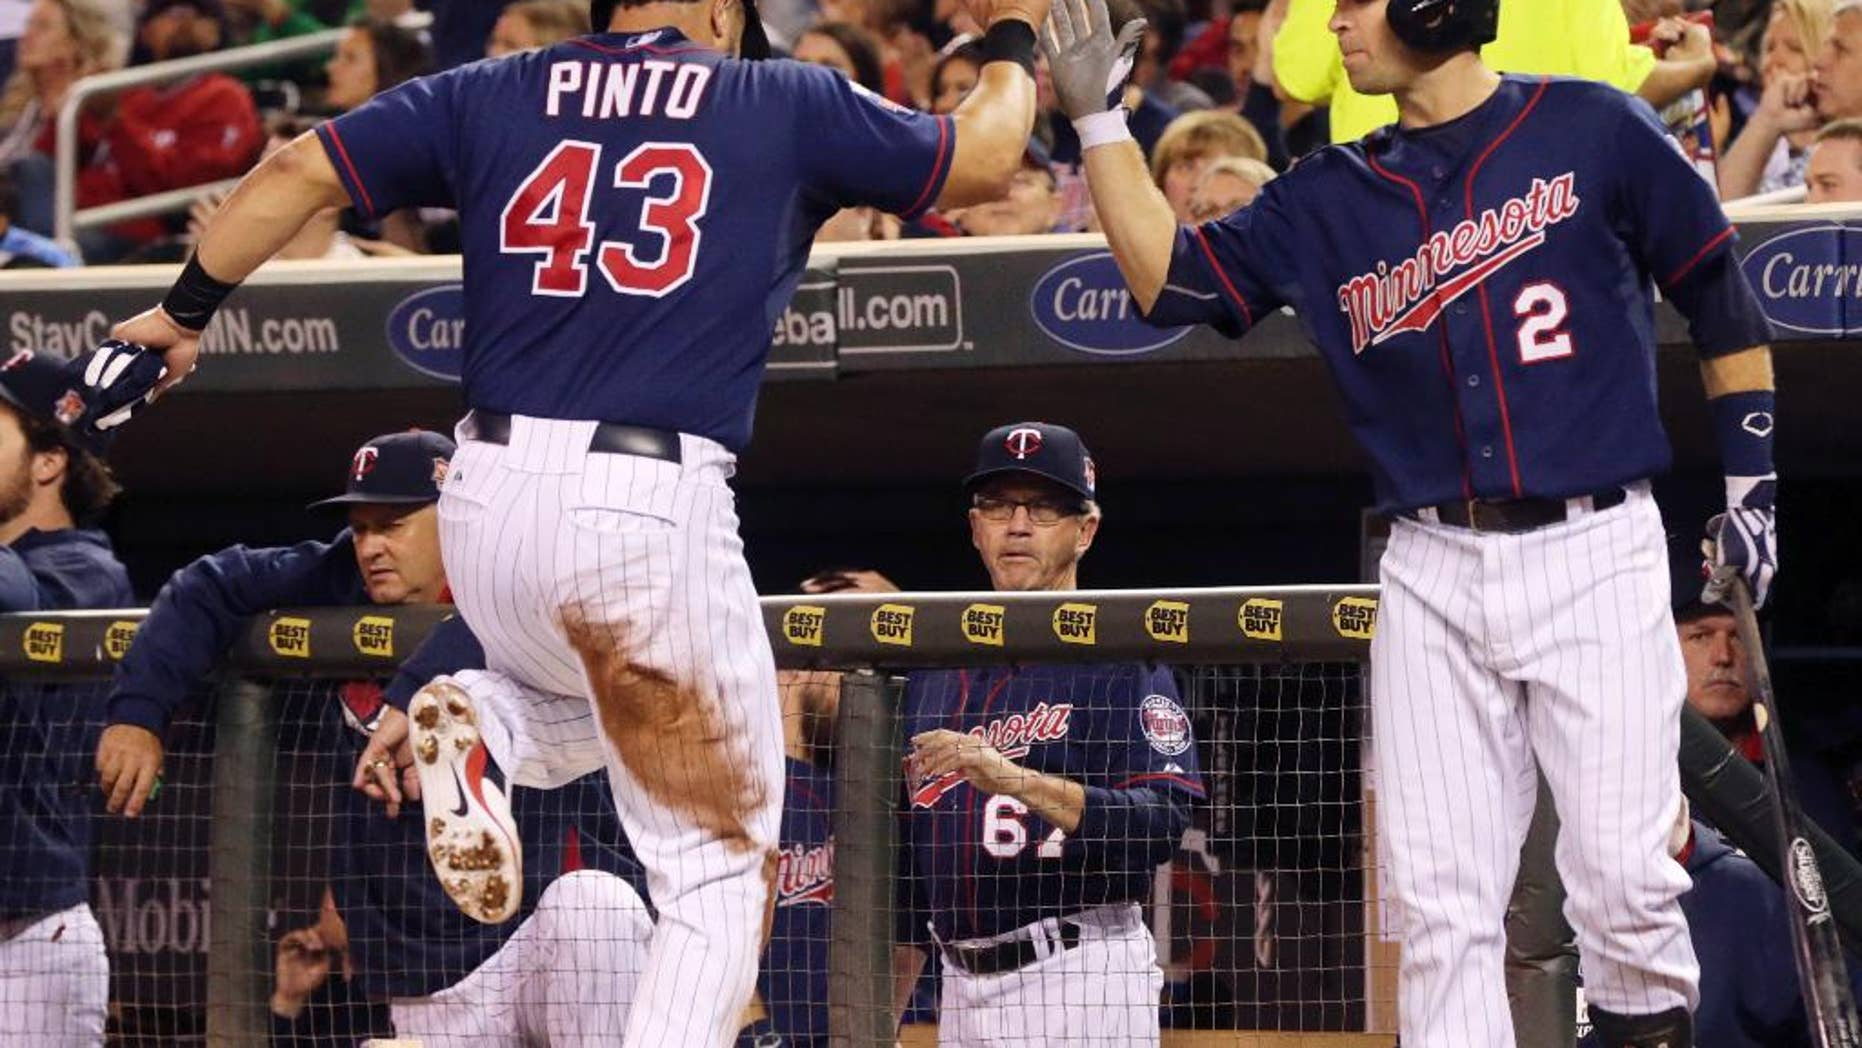 Minnesota Twins' Josmil Pinto, left, is congratulated by Brian Dozier after he scored on a single by Minnesota Twins' Eduardo Escobar off Arizona Diamondbacks pitcher Andrew Chafin in the second inning of a baseball game, Tuesday, Sept. 23, 2014, in Minneapolis. (AP Photo/Jim Mone)